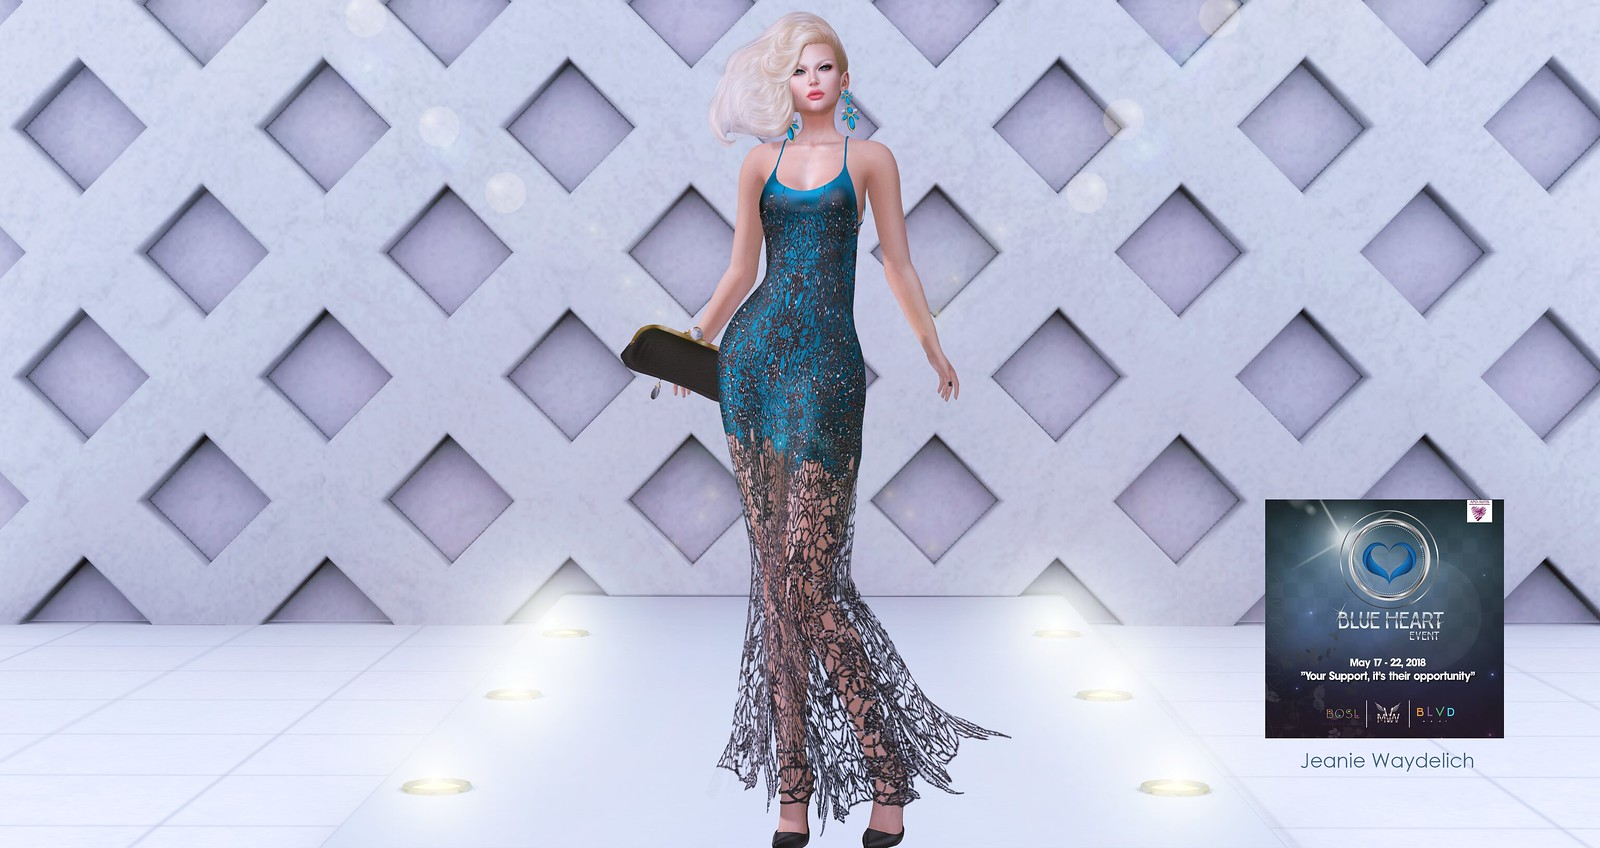 LOTD 965 - Blue, Black and Blond